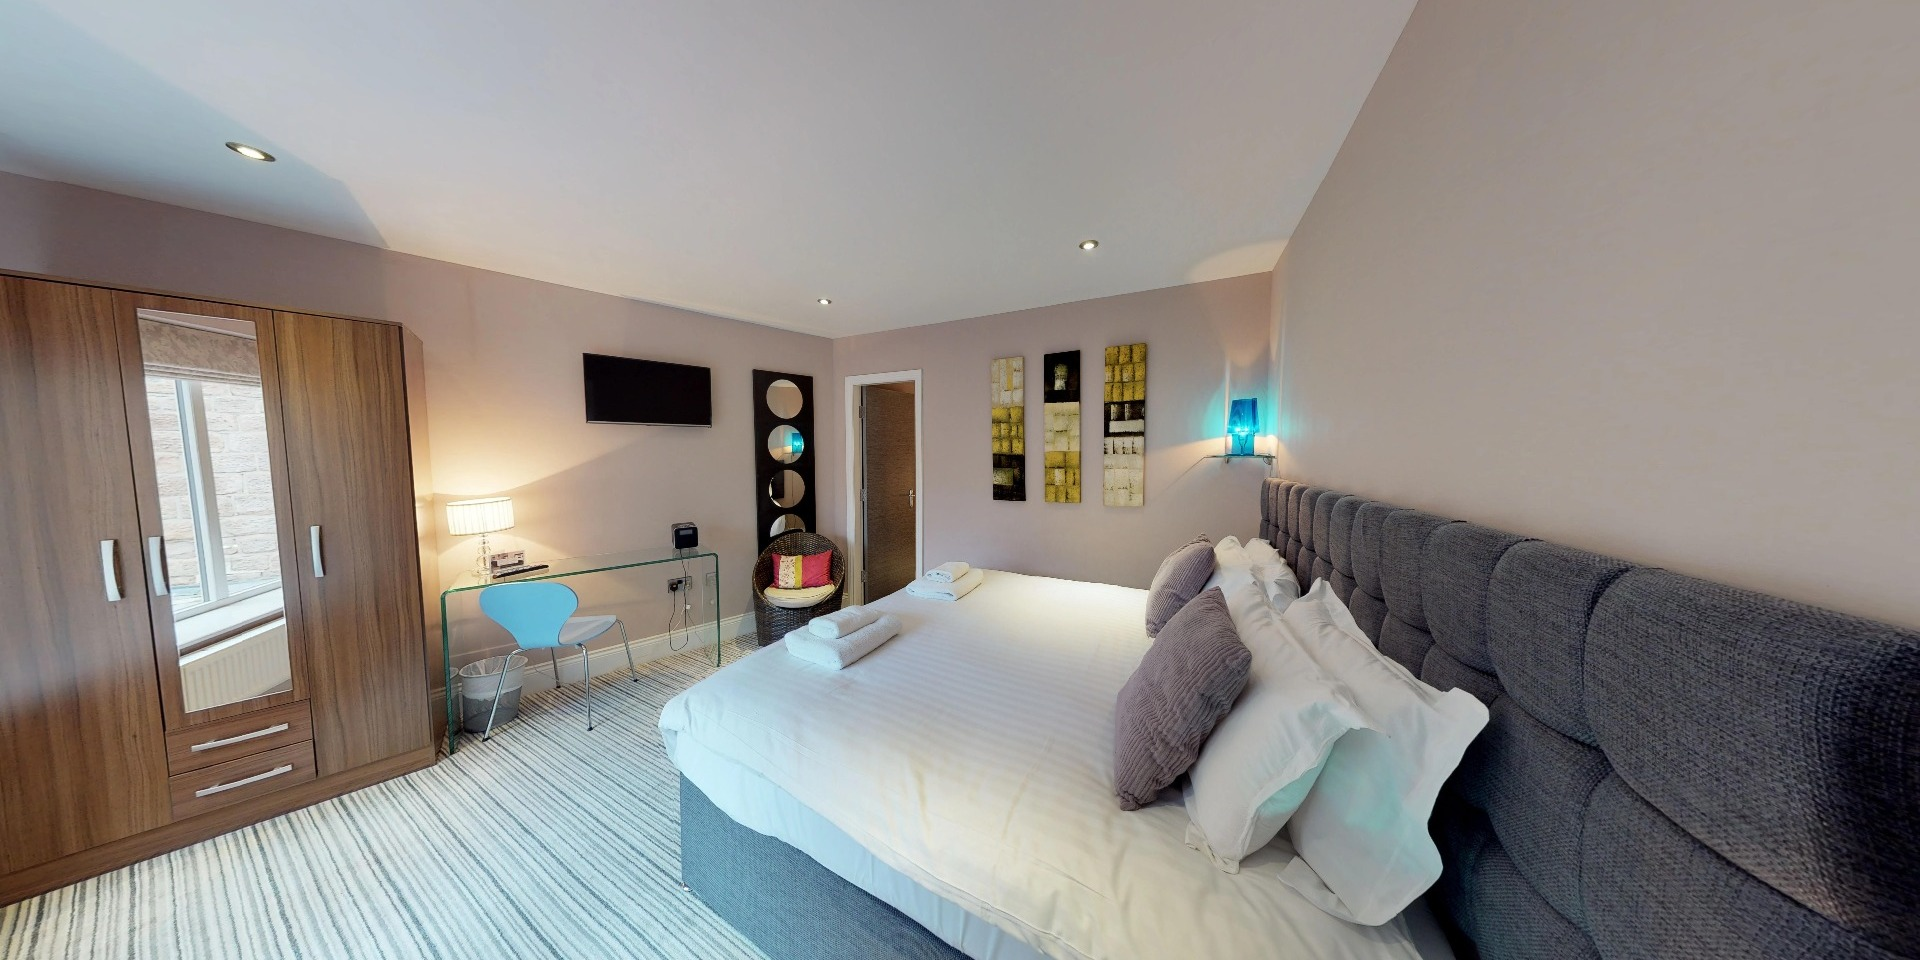 Harrogate Lifestyle offers stylish two bedroom one bathroom apartment for up to 4 people with double or twin bed set up facility. For Bookings Call now - 01423 568820